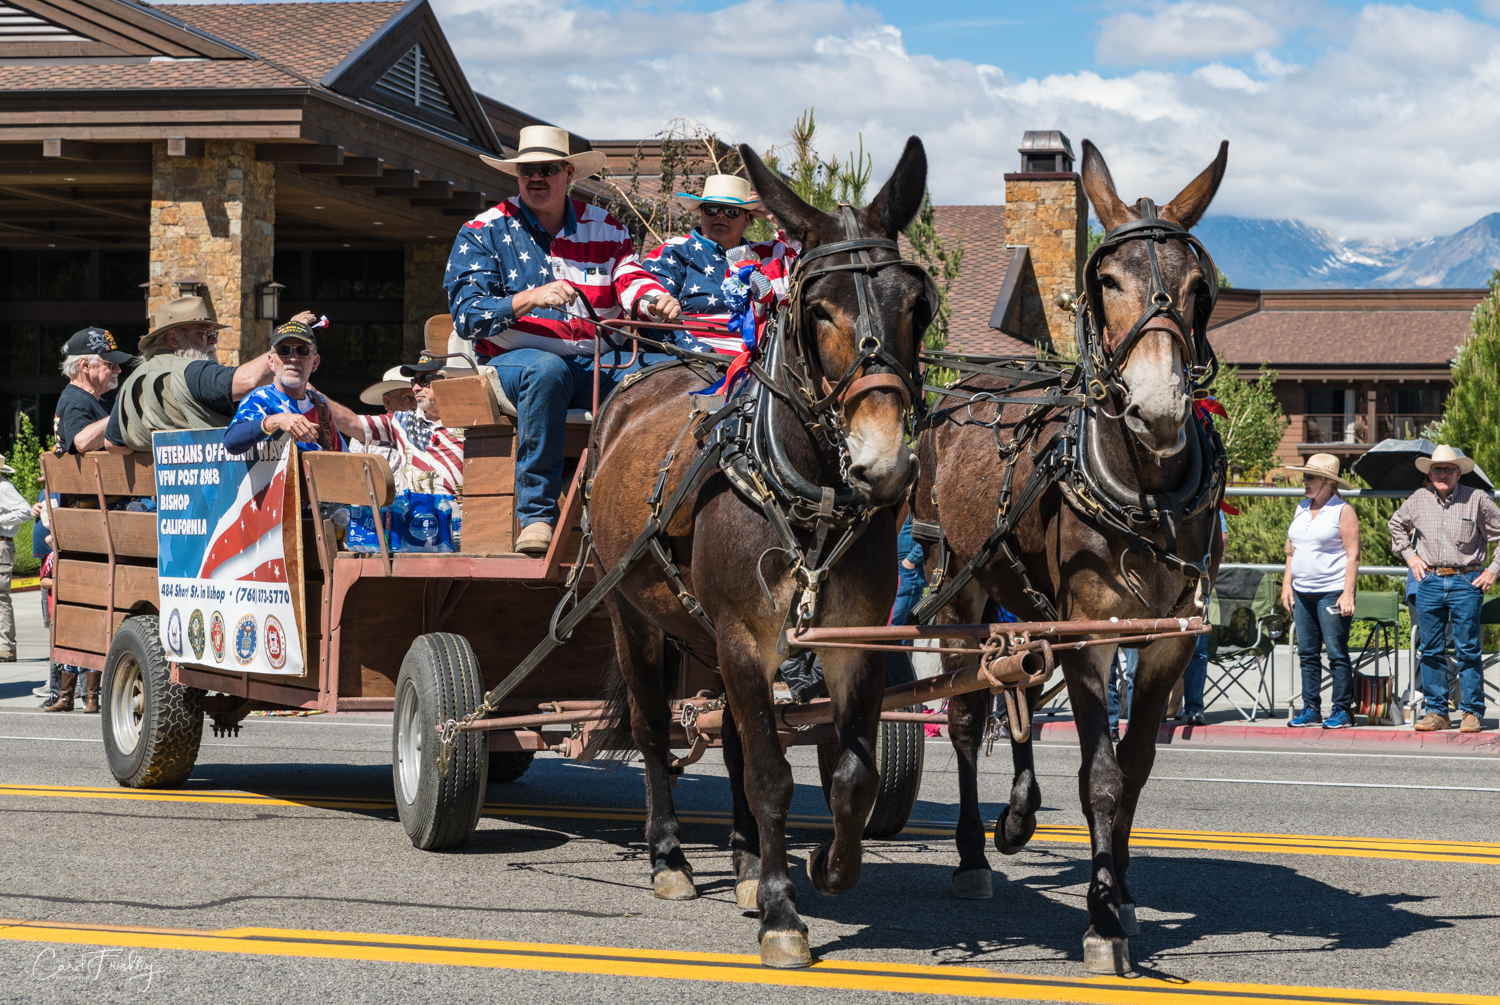 The parade sometimes moved slowly. As a result, the participants had to 'weave' back and forth along the route. We often got a direct 'look' at the mules. I ended up loving them.